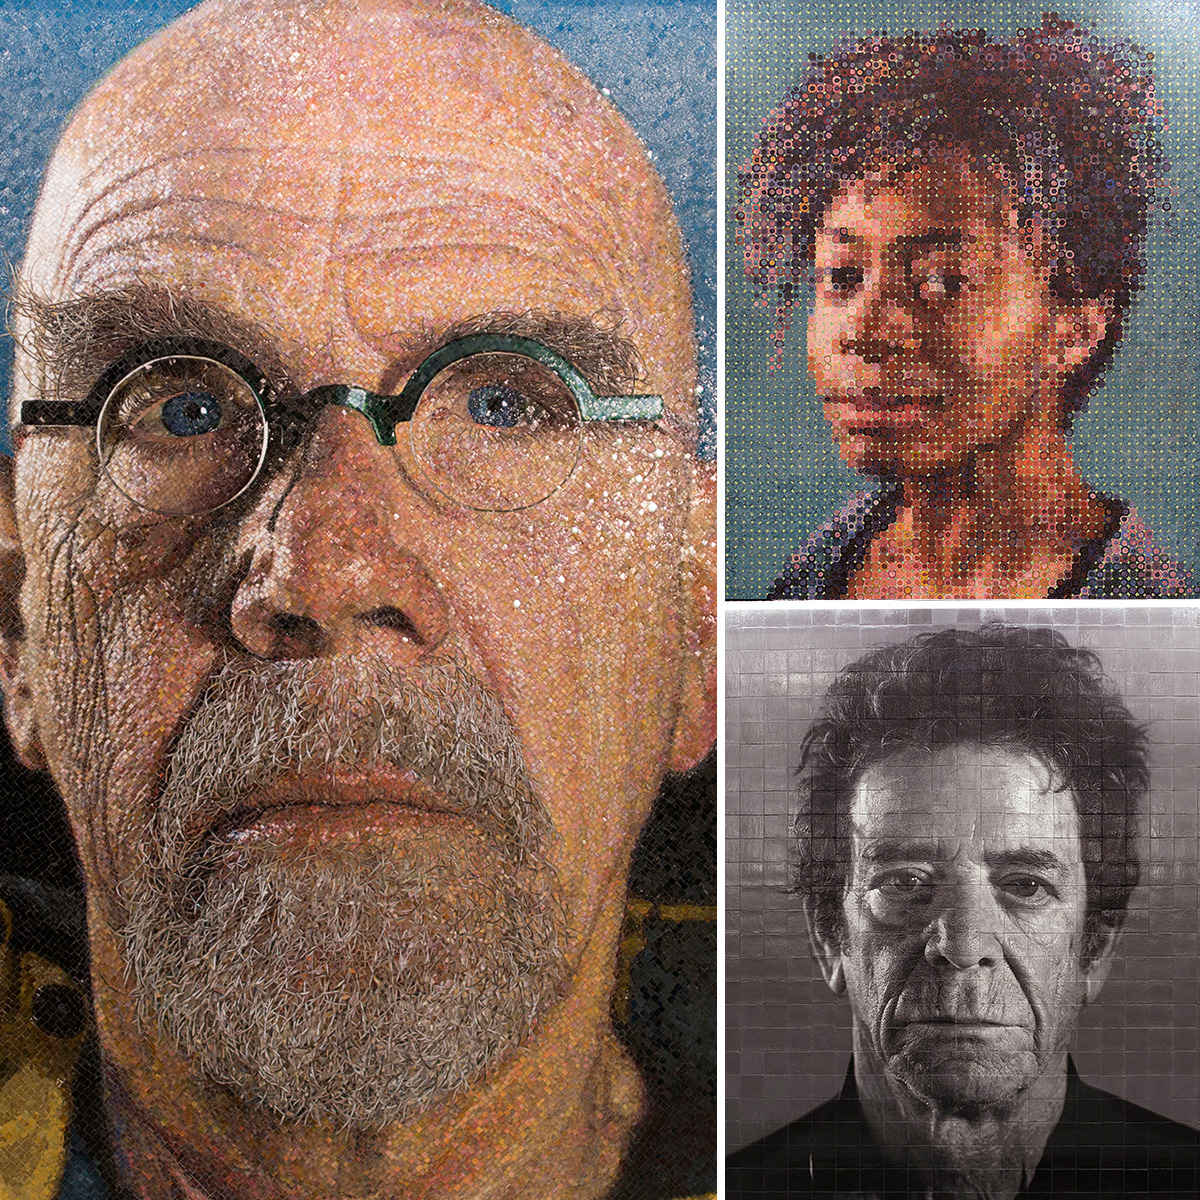 86th Street station. Art by Chuck Close.